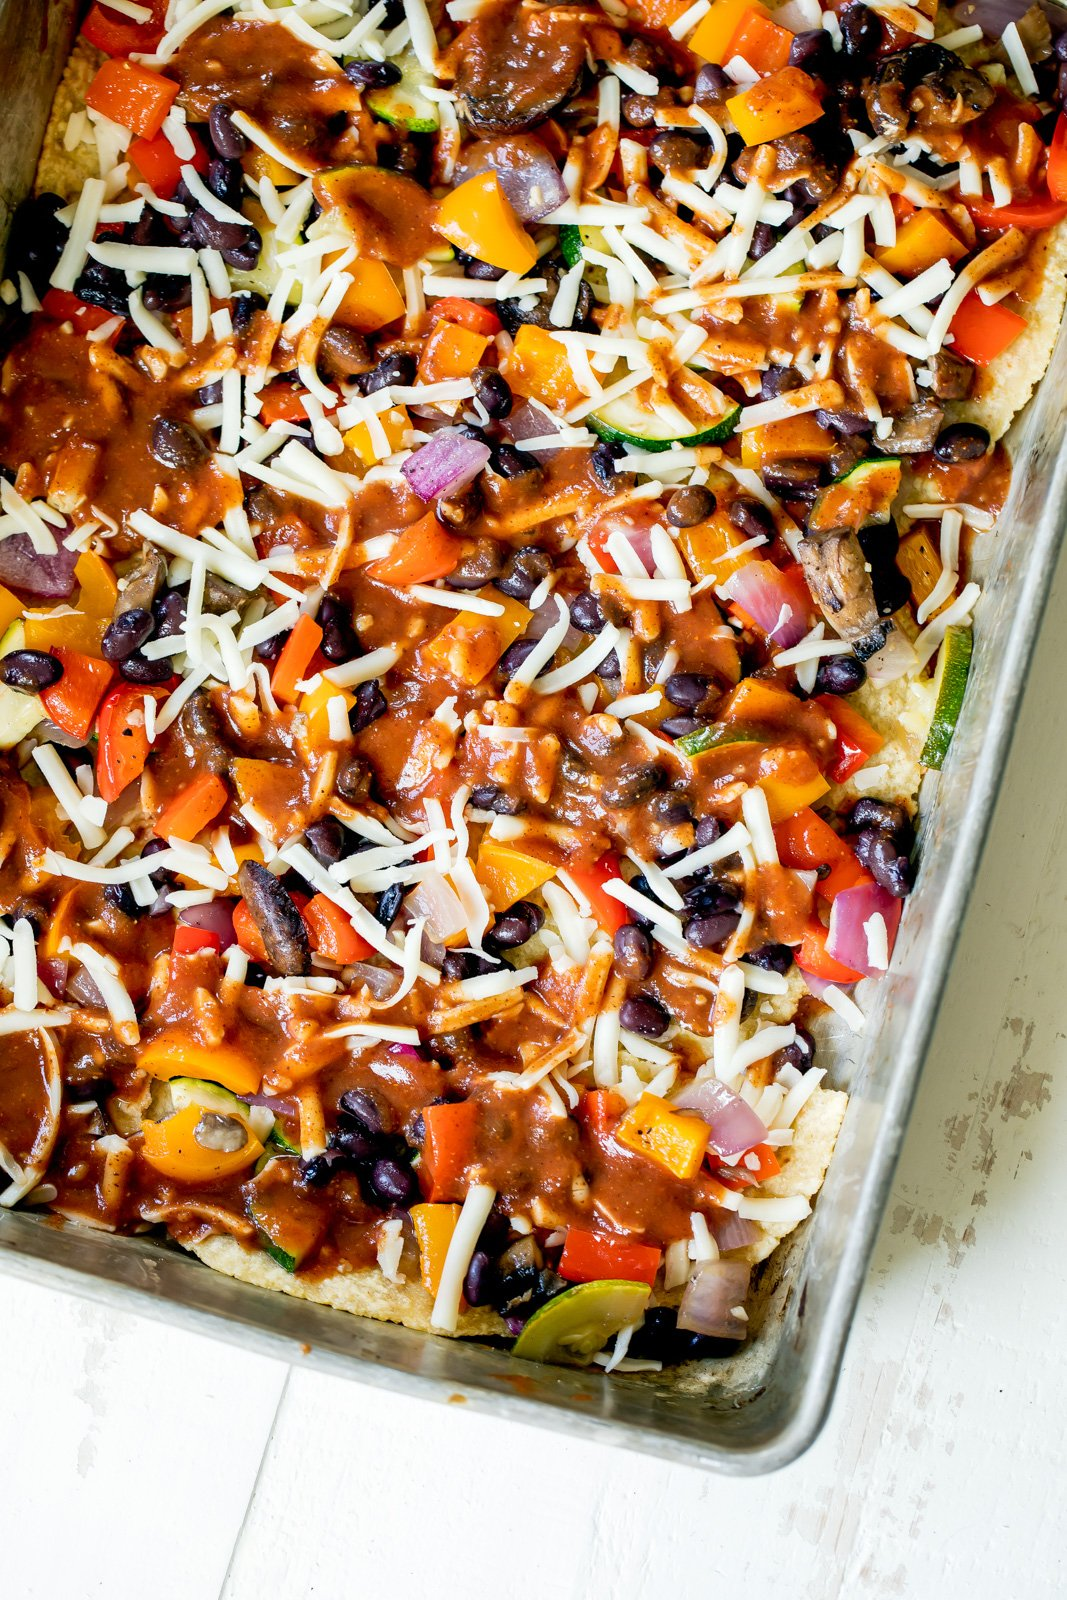 vegetarian enchilada casserole ready to bake in a dish